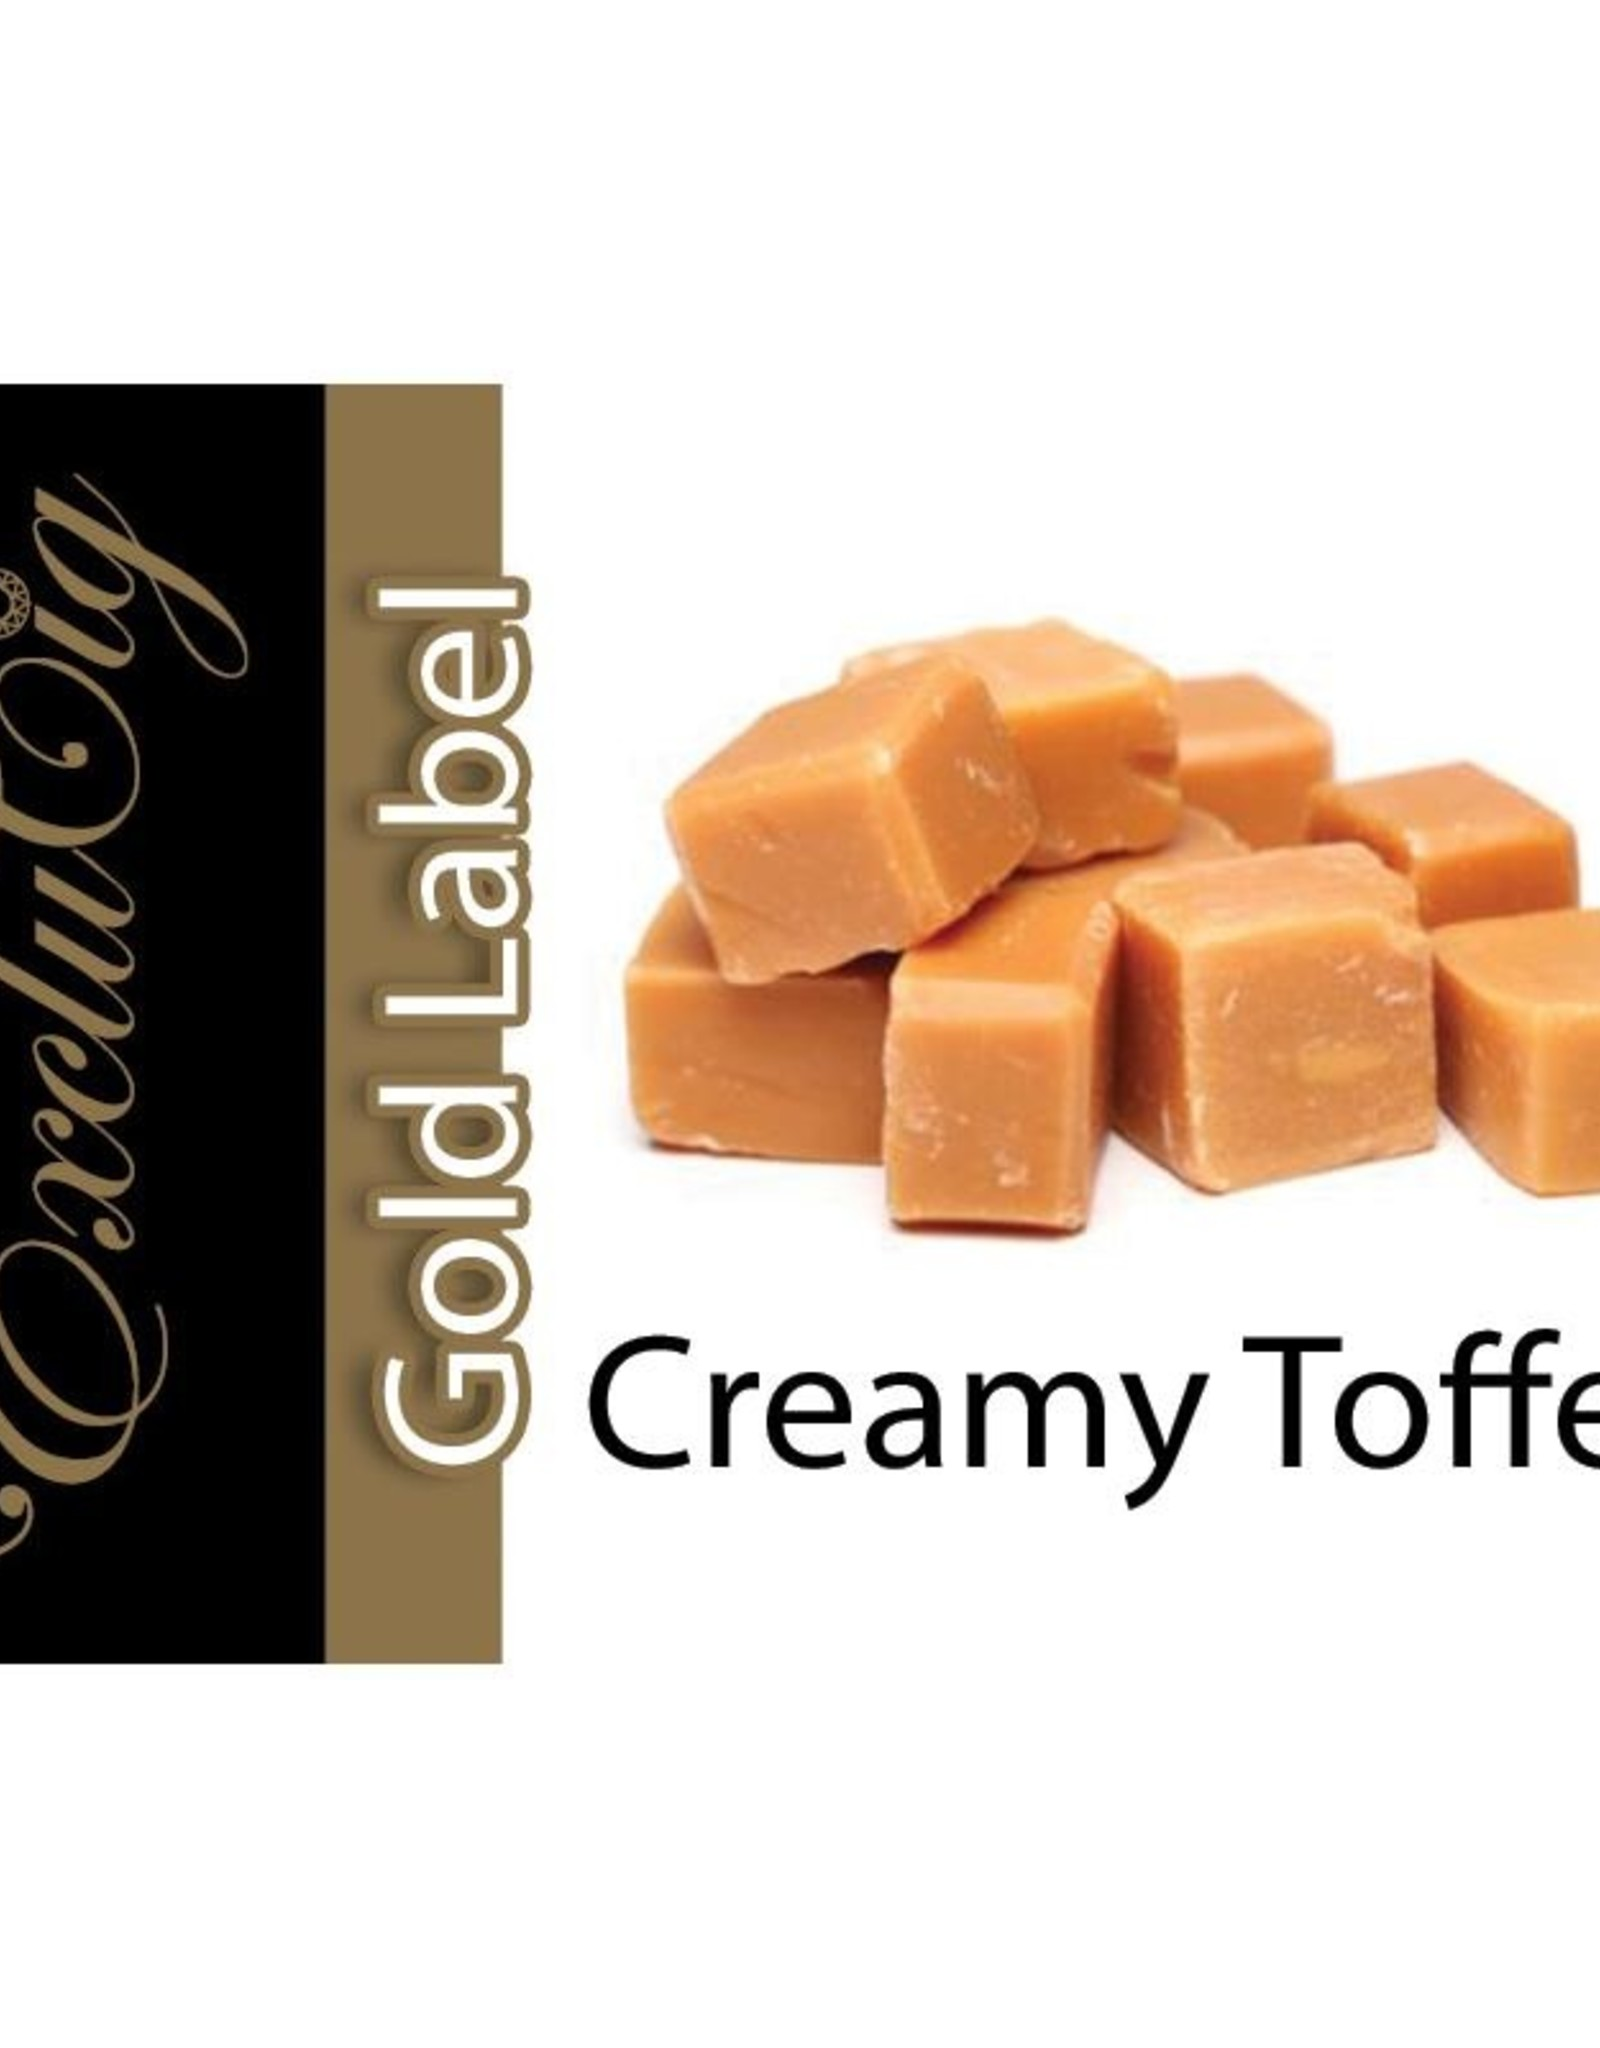 Exclucig Exclucig Gold Label E-liquid Creamy Toffee 18 mg Nicotine